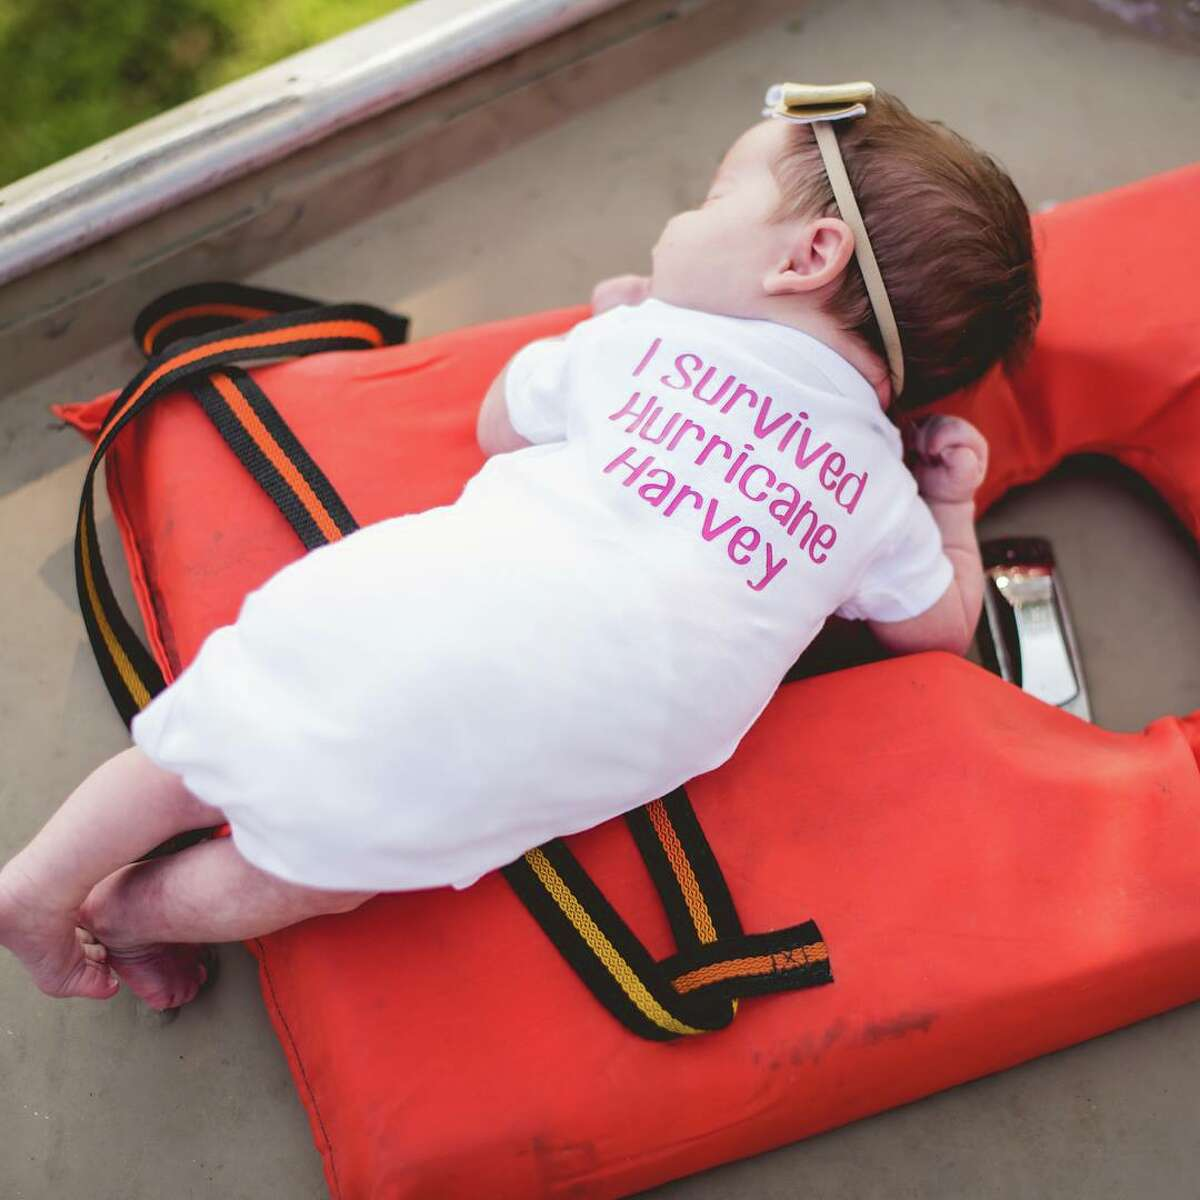 Baby Hope of Orange, Texas, had her newborn photos taken in a Cajun Navy boat that rescued Hope and her family from Harvey floodwaters on Aug. 30, 2017.